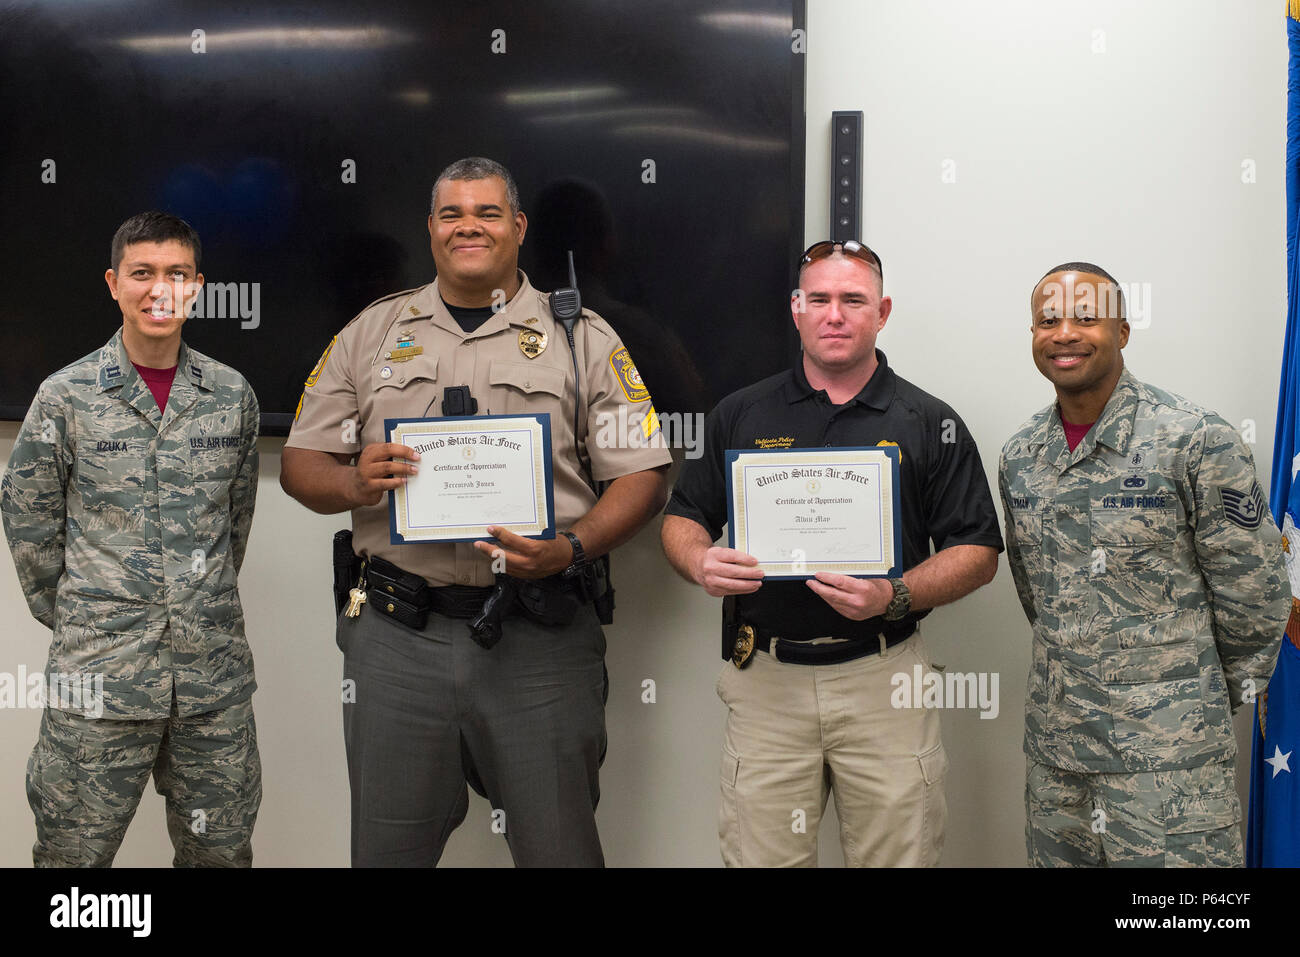 U.S. Air Force Capt. Koji Iizuka, left, and Tech. Sgt. Ronnie Lyman, right, 23d Medical Operations Squadron, present Valdosta Police Department Sgt. Jeremyah Jones, center left, and patrolman Alvin May, with a certificate of appreciation at a lunch and learn, April 8, 2016, at Moody Air Force Base, Ga. The officers received the certificates after speaking to Airmen about the dangers irresponsible drinking in observation of Alcohol Awareness Month. (U.S. Air Force photo by Airman Daniel Snider/Released) - Stock Image